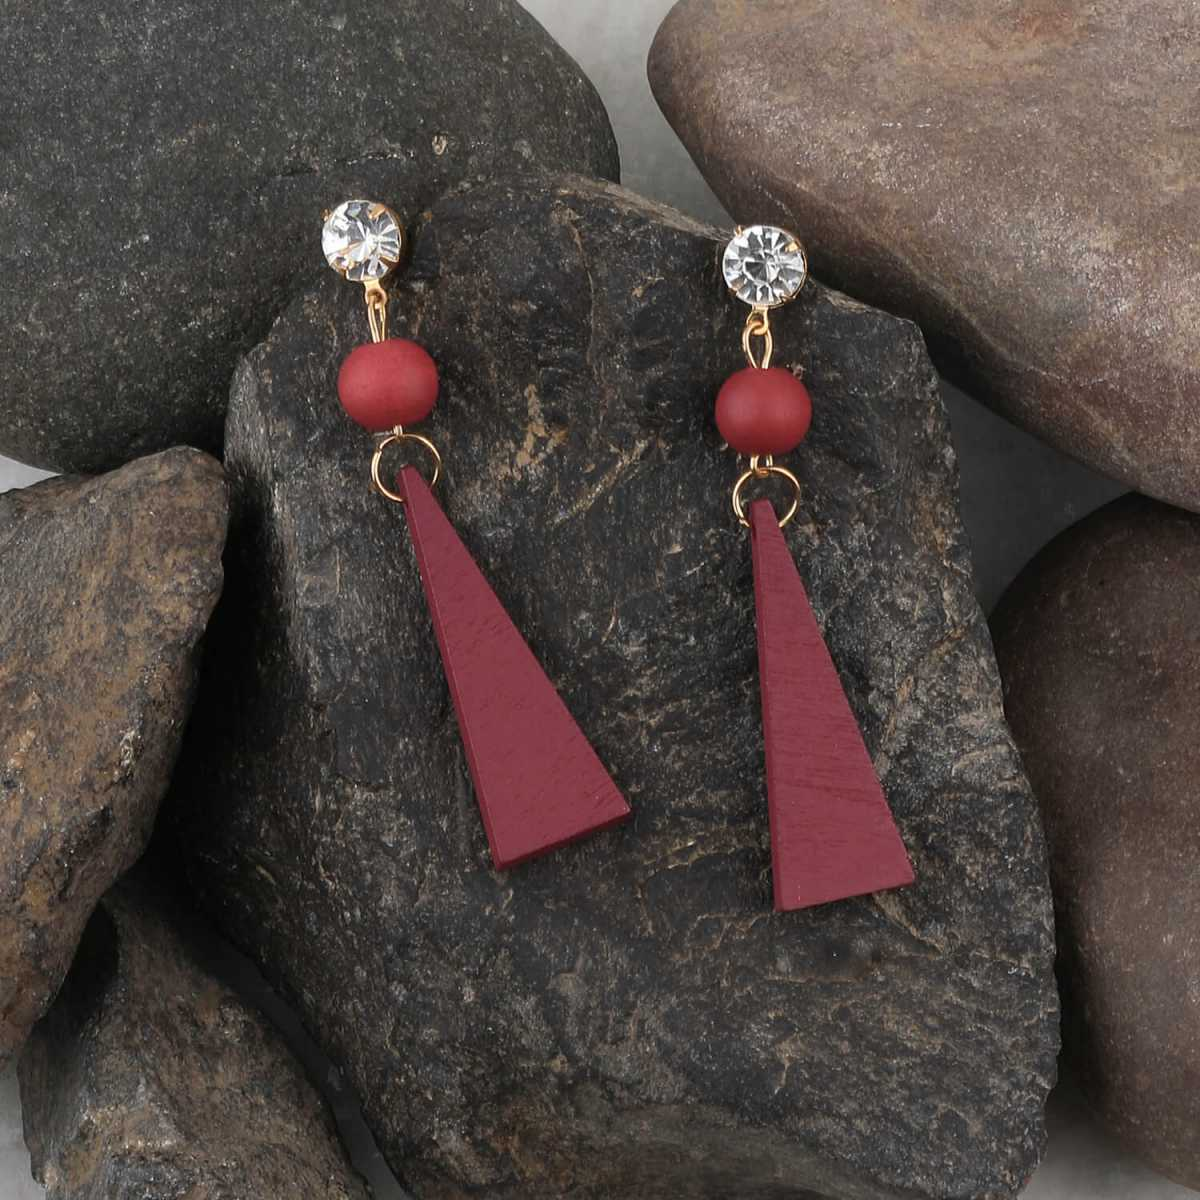 SILVER SHINE Antique Maroon Wooden Dangler Diamond  Earrings Perfect and Different Look for women girl.